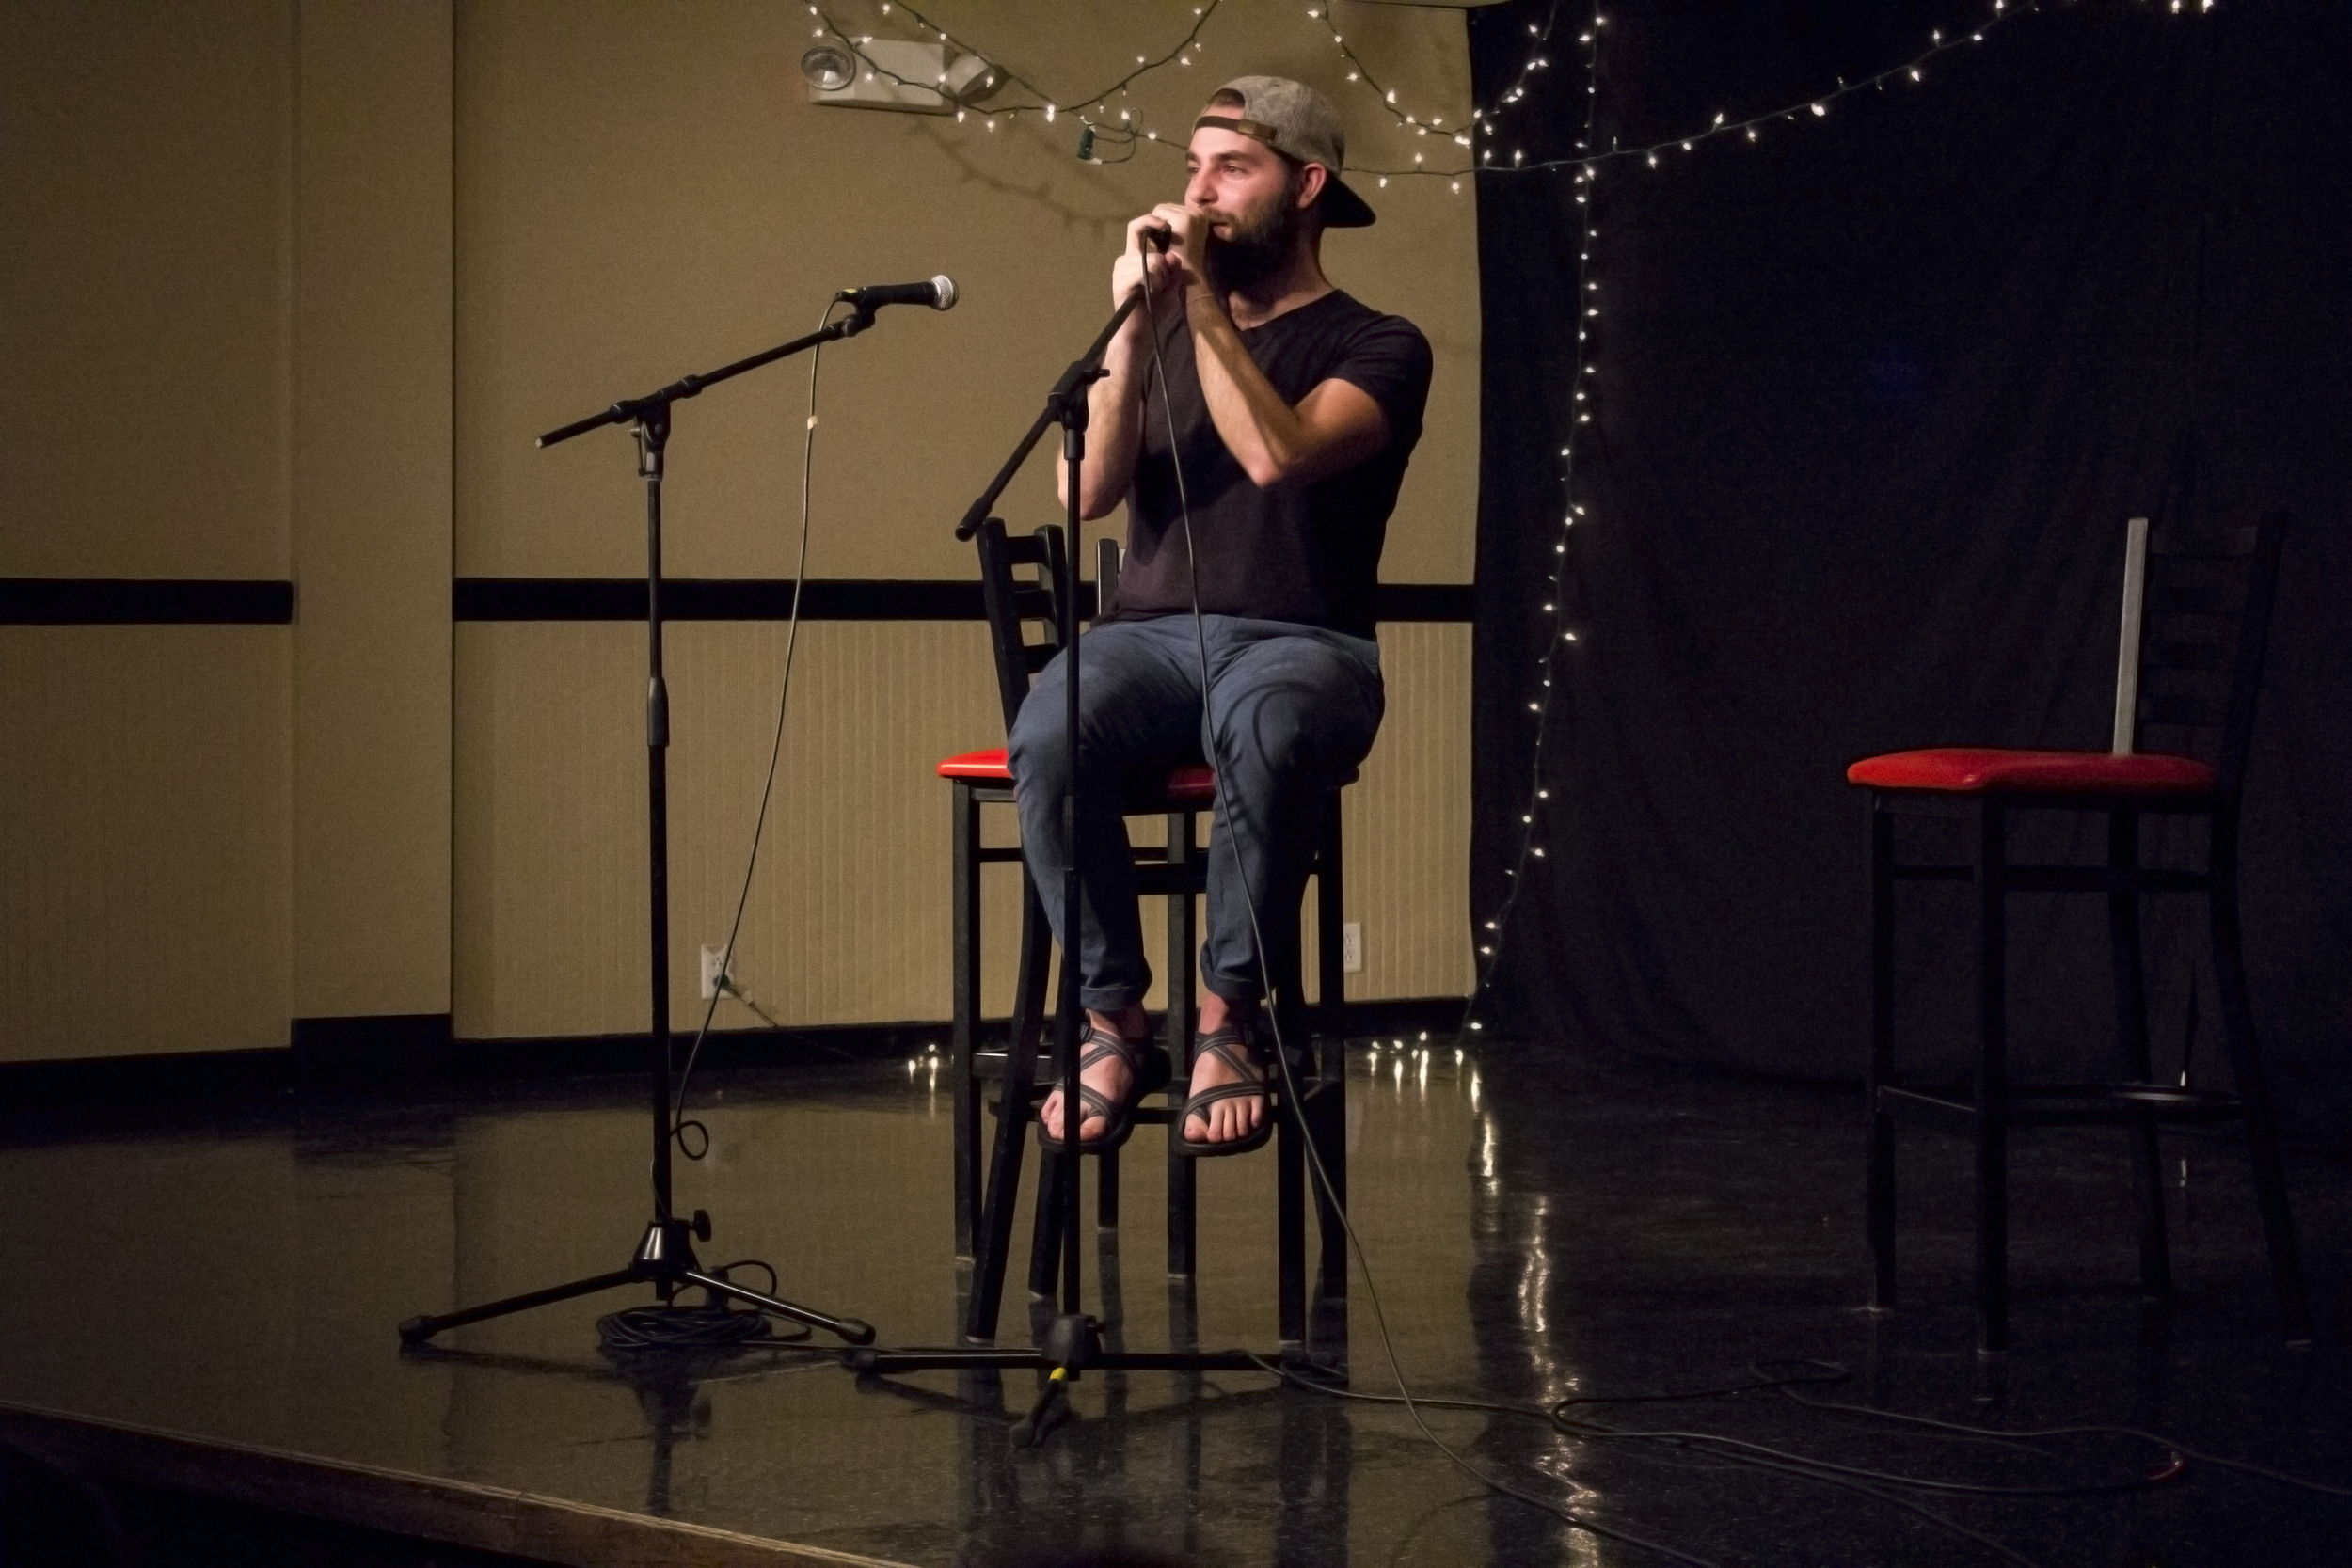 """Drew Norris acts as the MC of the night by singing """"Oh Where Is My Hairbrush"""" to fill the time before getting the winner results for the night."""